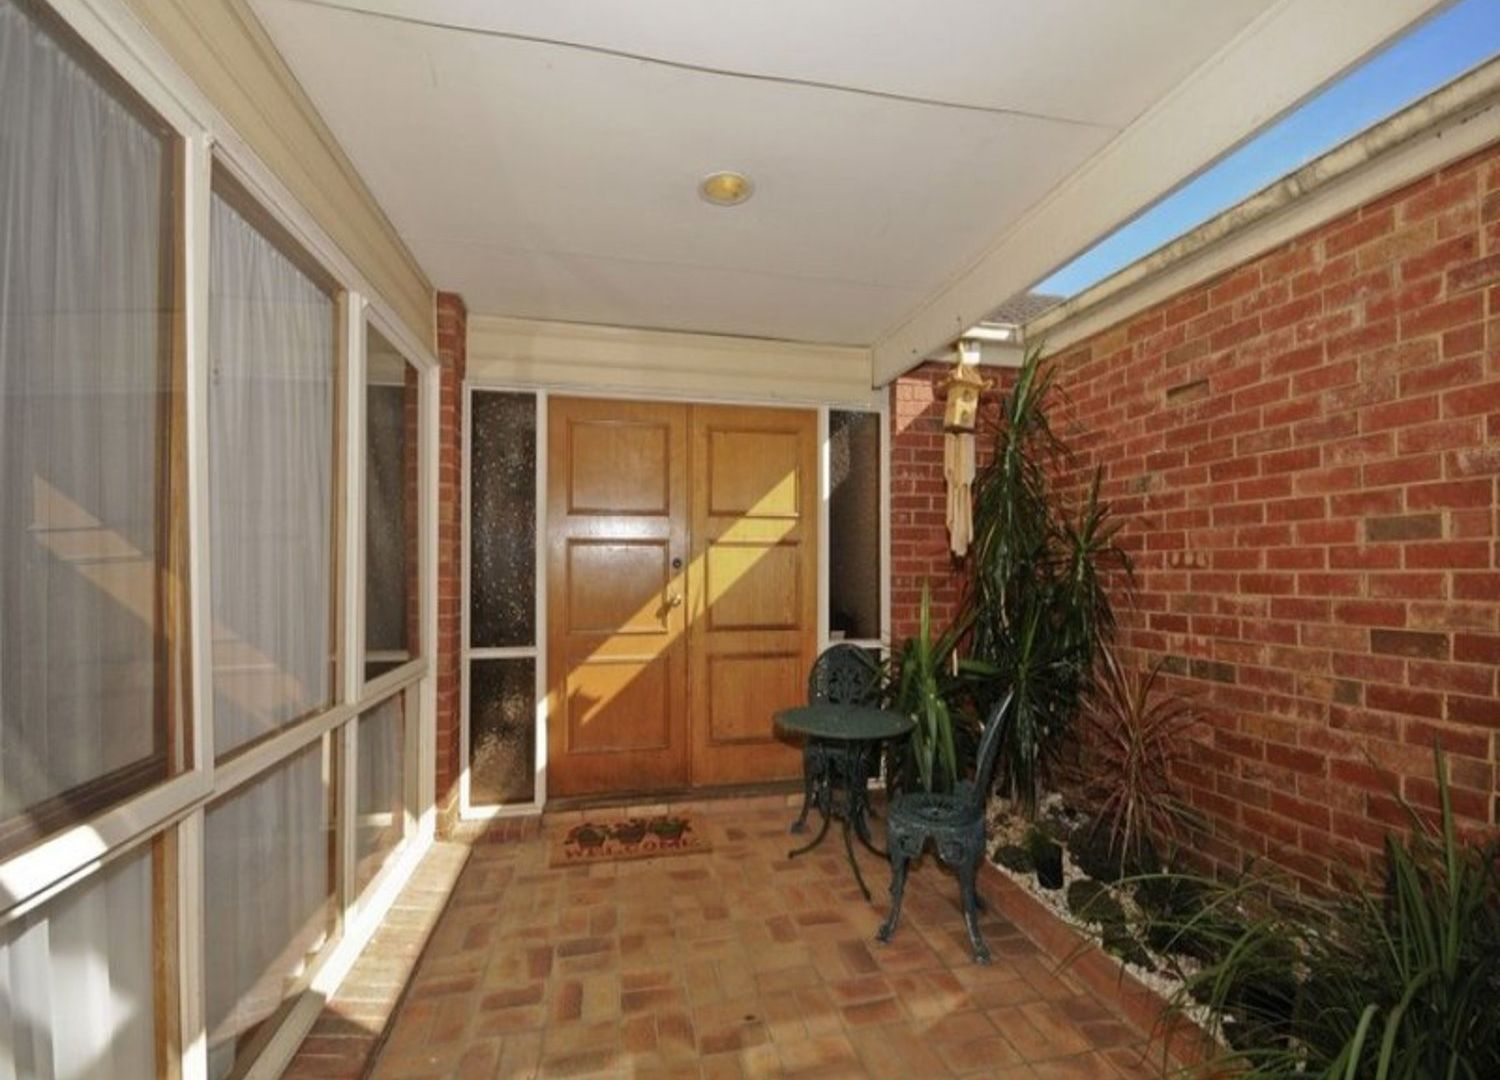 89 Cathies Lane, Wantirna South VIC 3152, Image 1